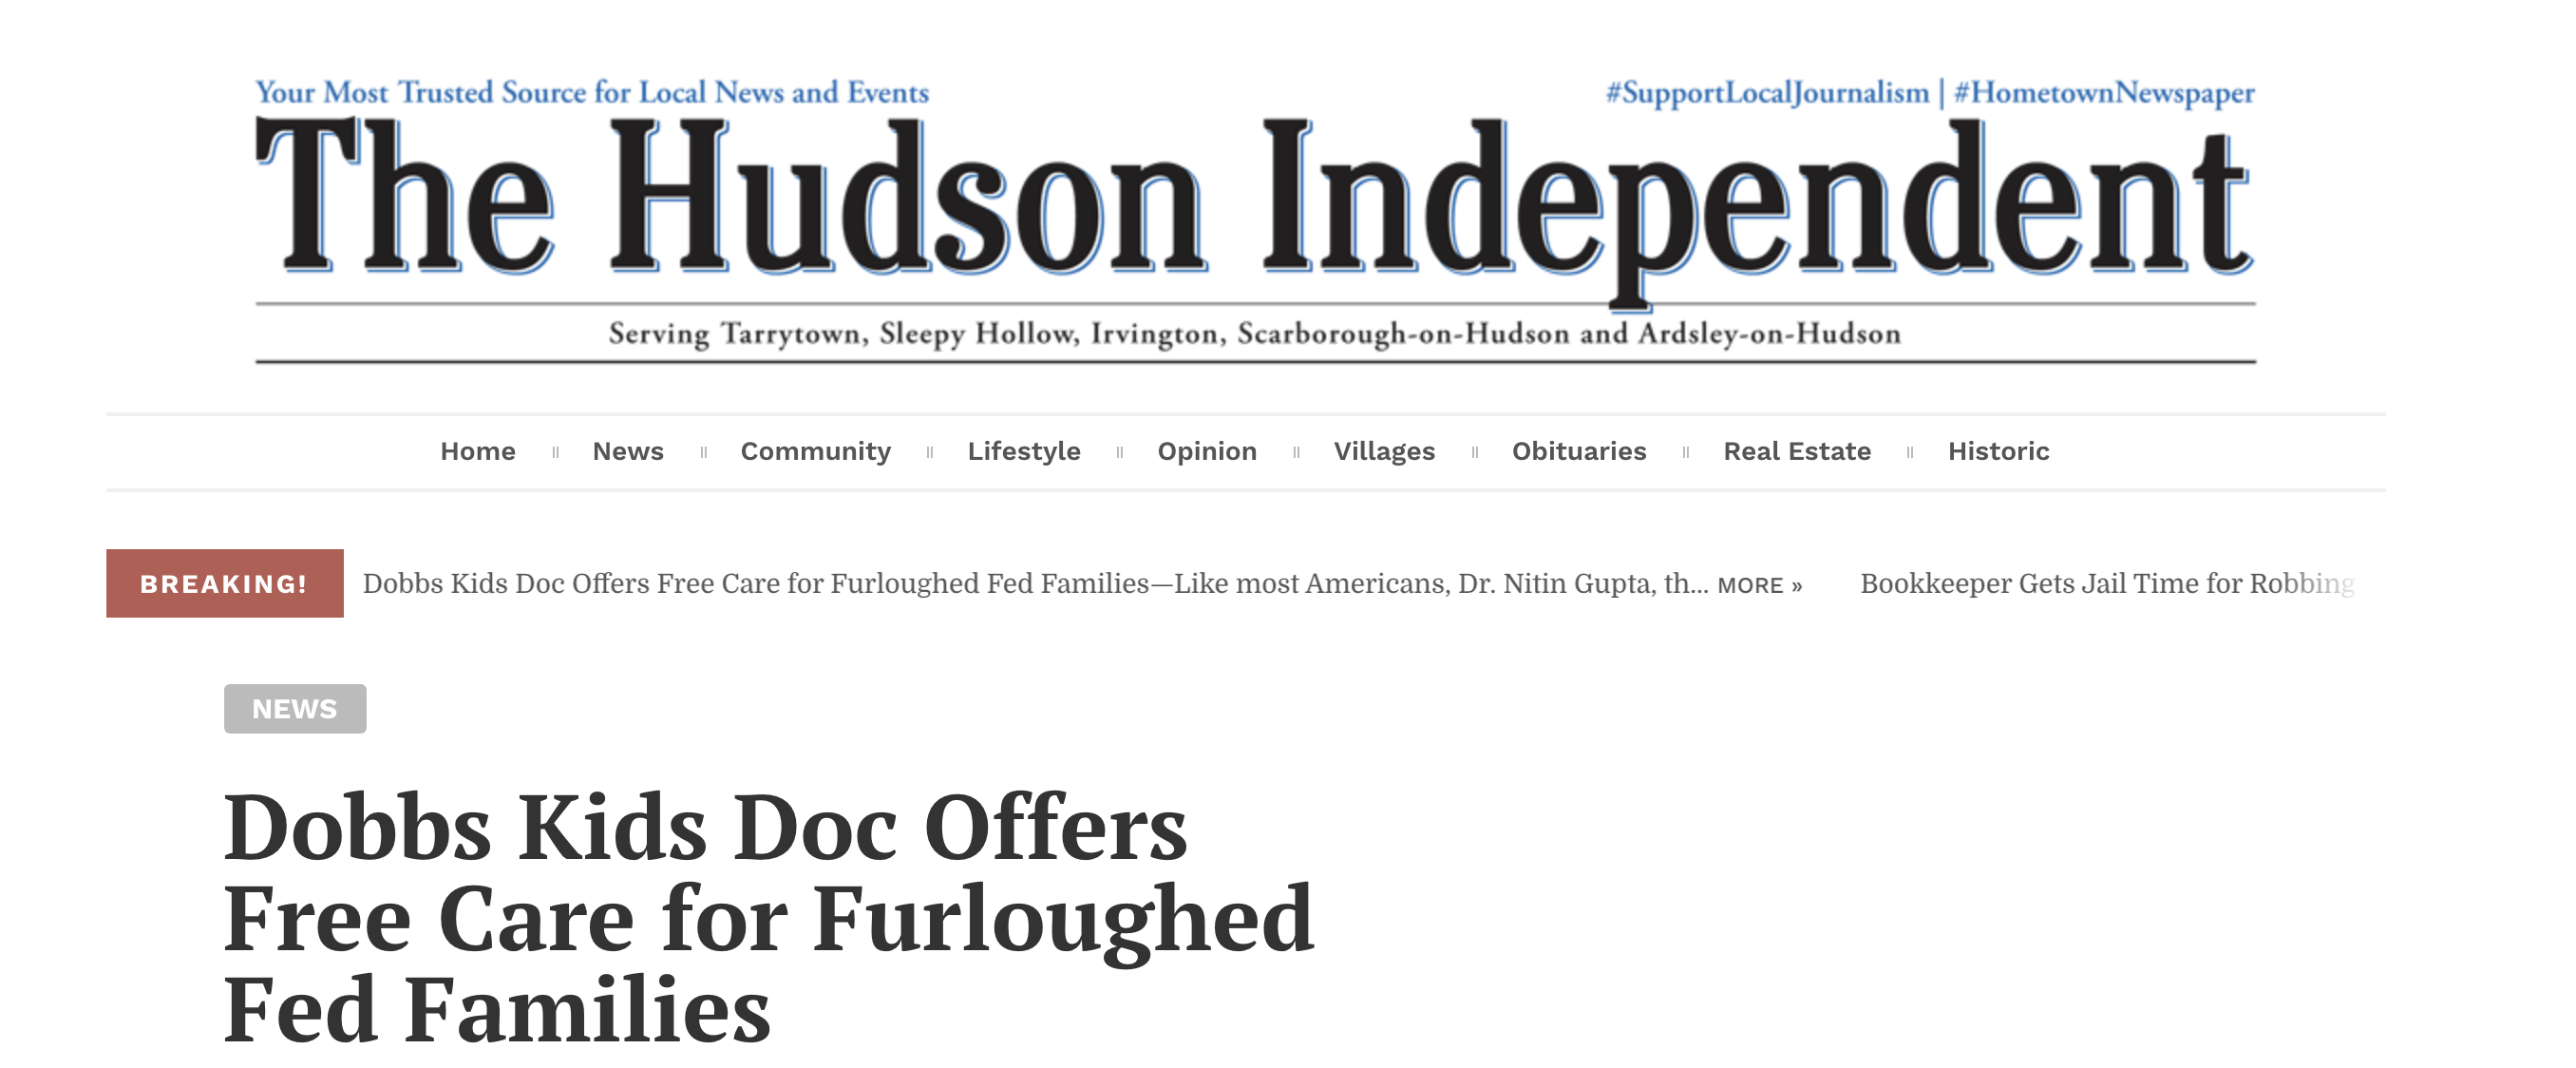 Dobbs Kids Doc Offers Free Care for Furloughed Fed Families